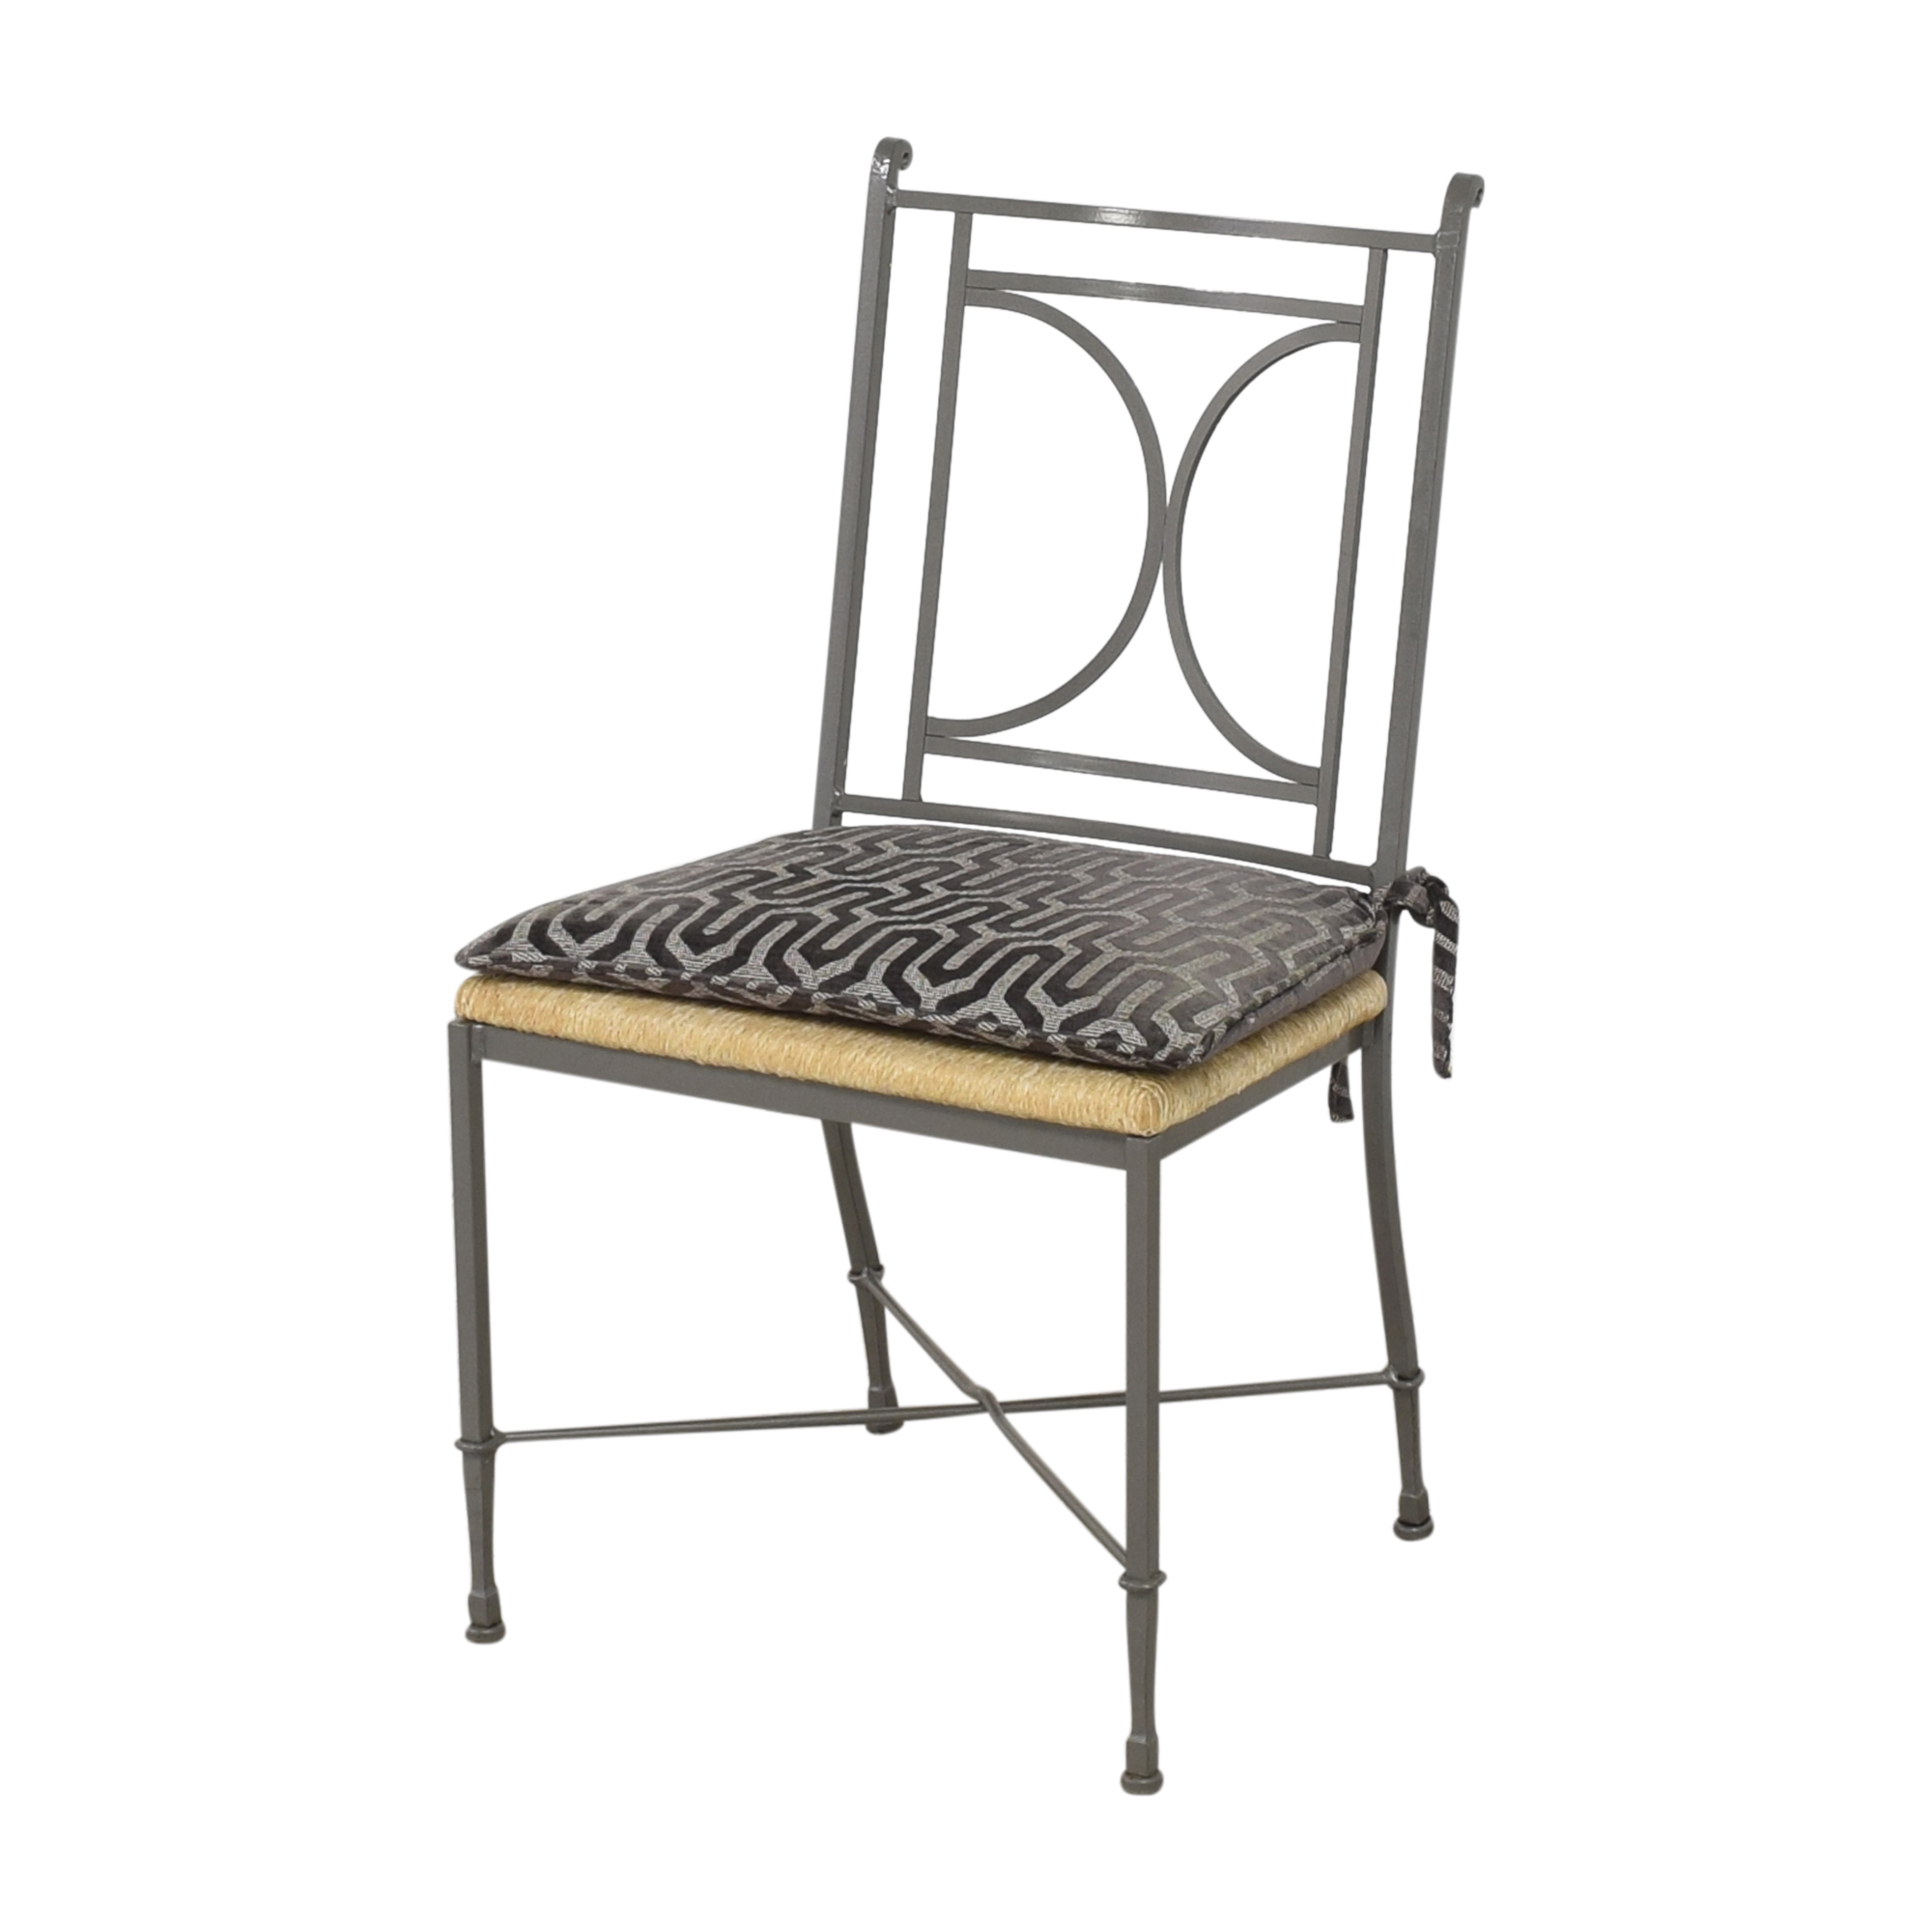 buy Charleston Forge Woven Seat Dining Chairs with Cushions Charleston Forge Dining Chairs